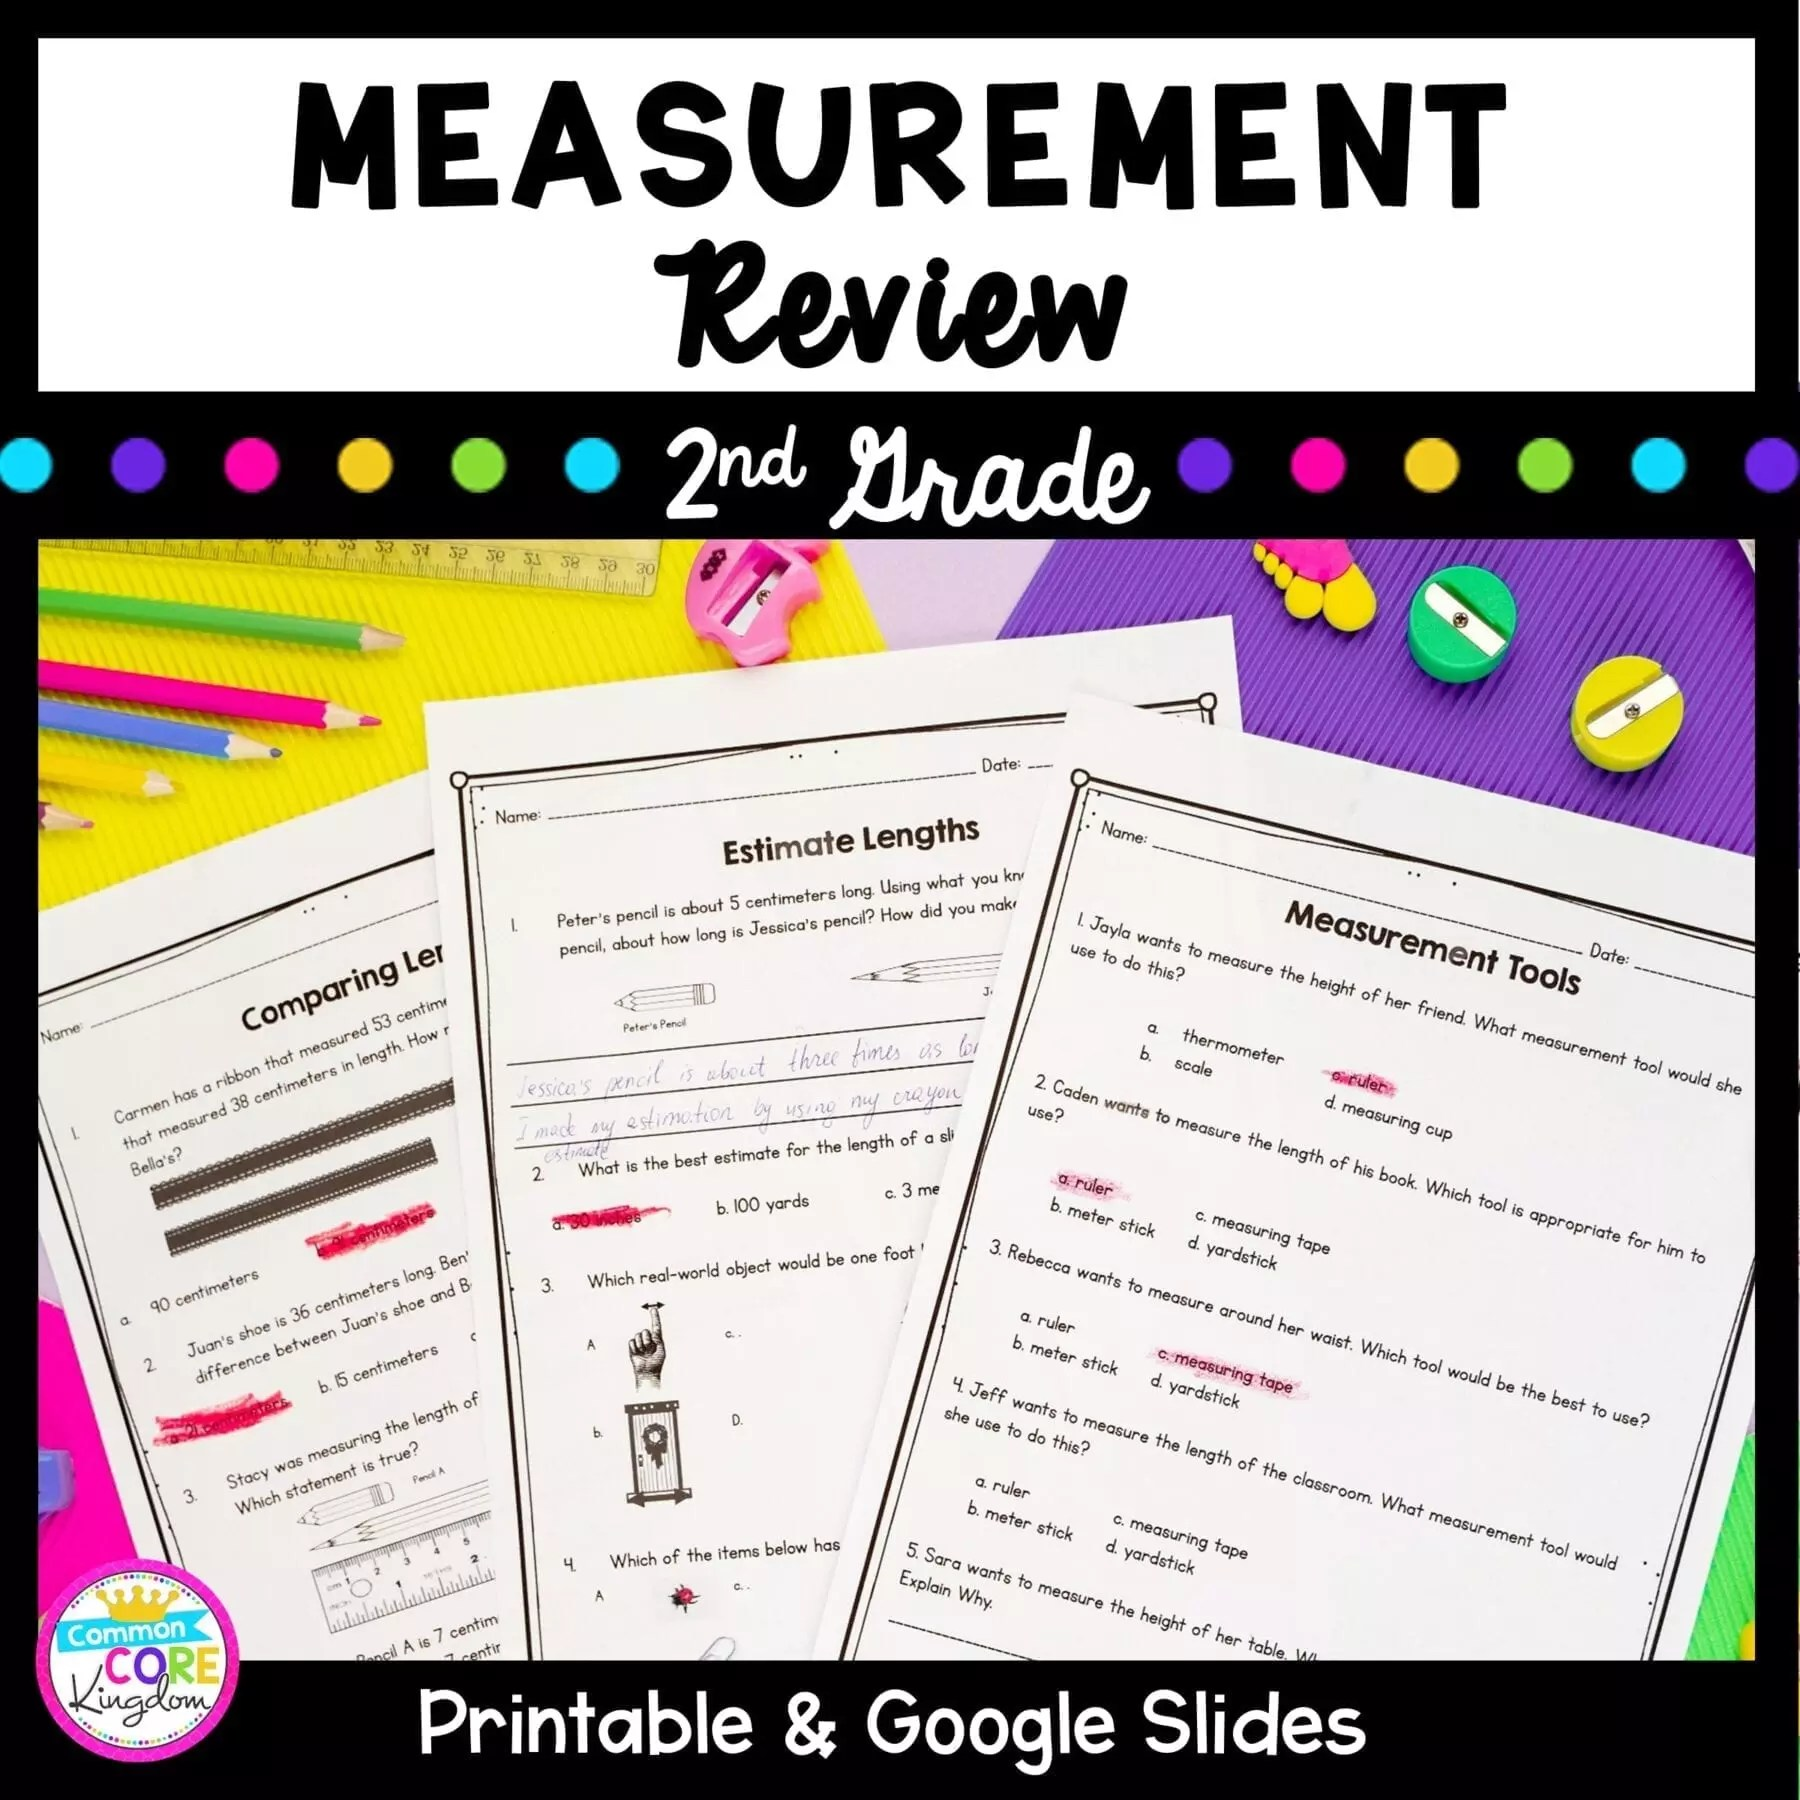 Measurement Review - 2nd Grade Google Slides Distance Learning Pack  Common Core Kingdom